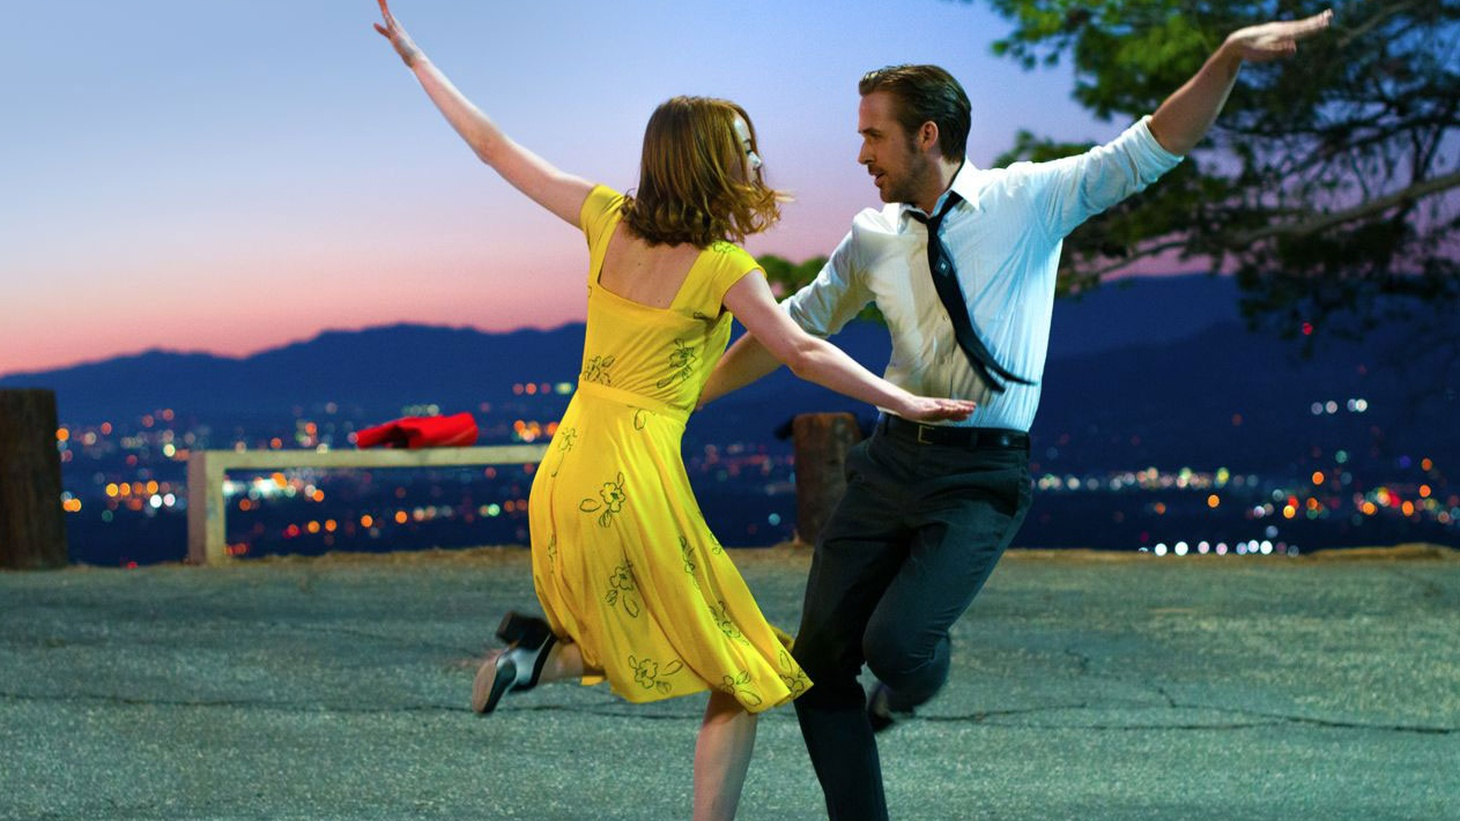 WEB BONUS: La La Land is a crowd-pleaser if ever there was one and Joe Morgenstern couldn't be more pleased to be part of the crowd.